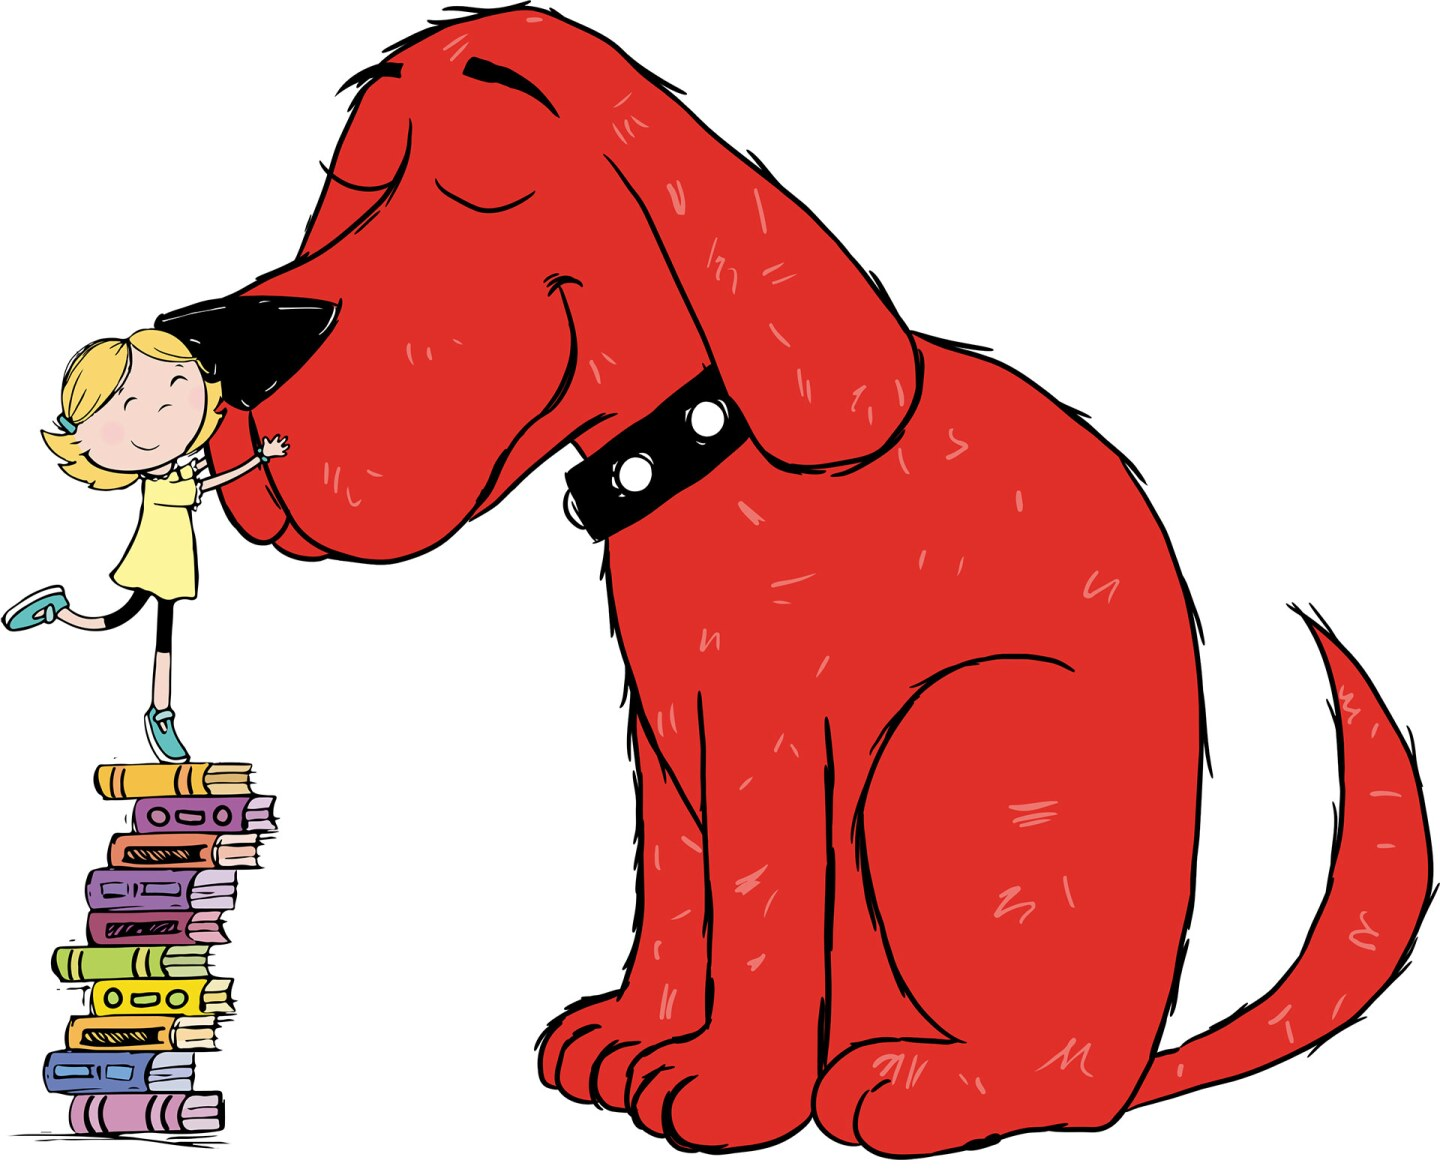 A large cartoon dog get a hug on his nose from a small girl standing atop a pile of books to reach him.